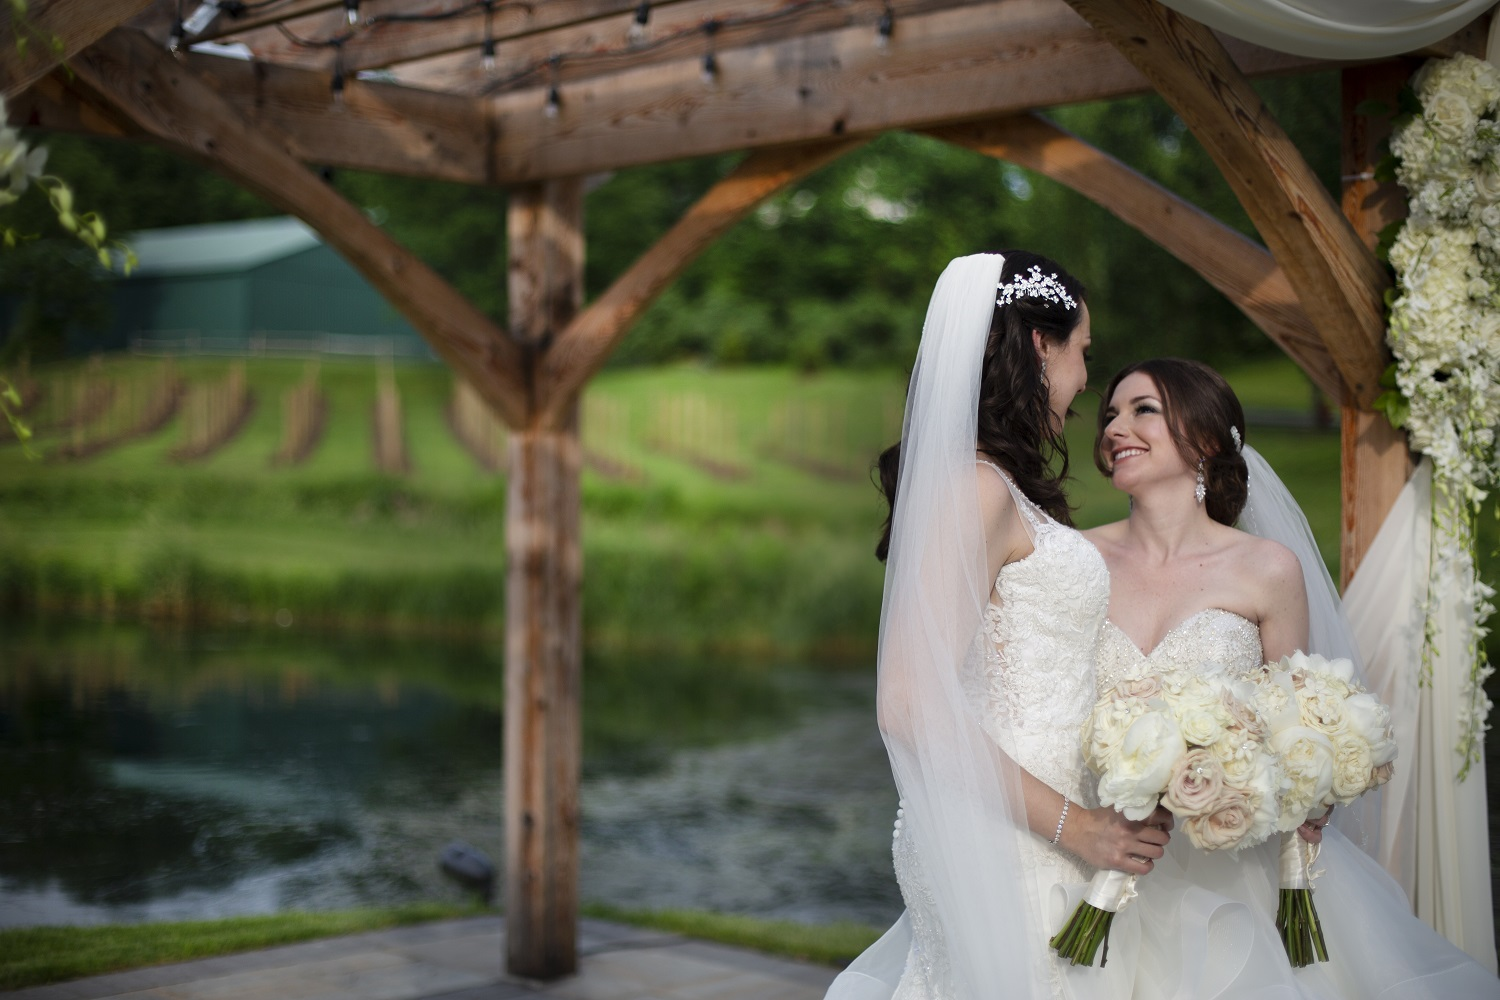 Cailin and Graciela – Wedding Photo Highlights from Bear Brook Valley in Fredon Township, NJ